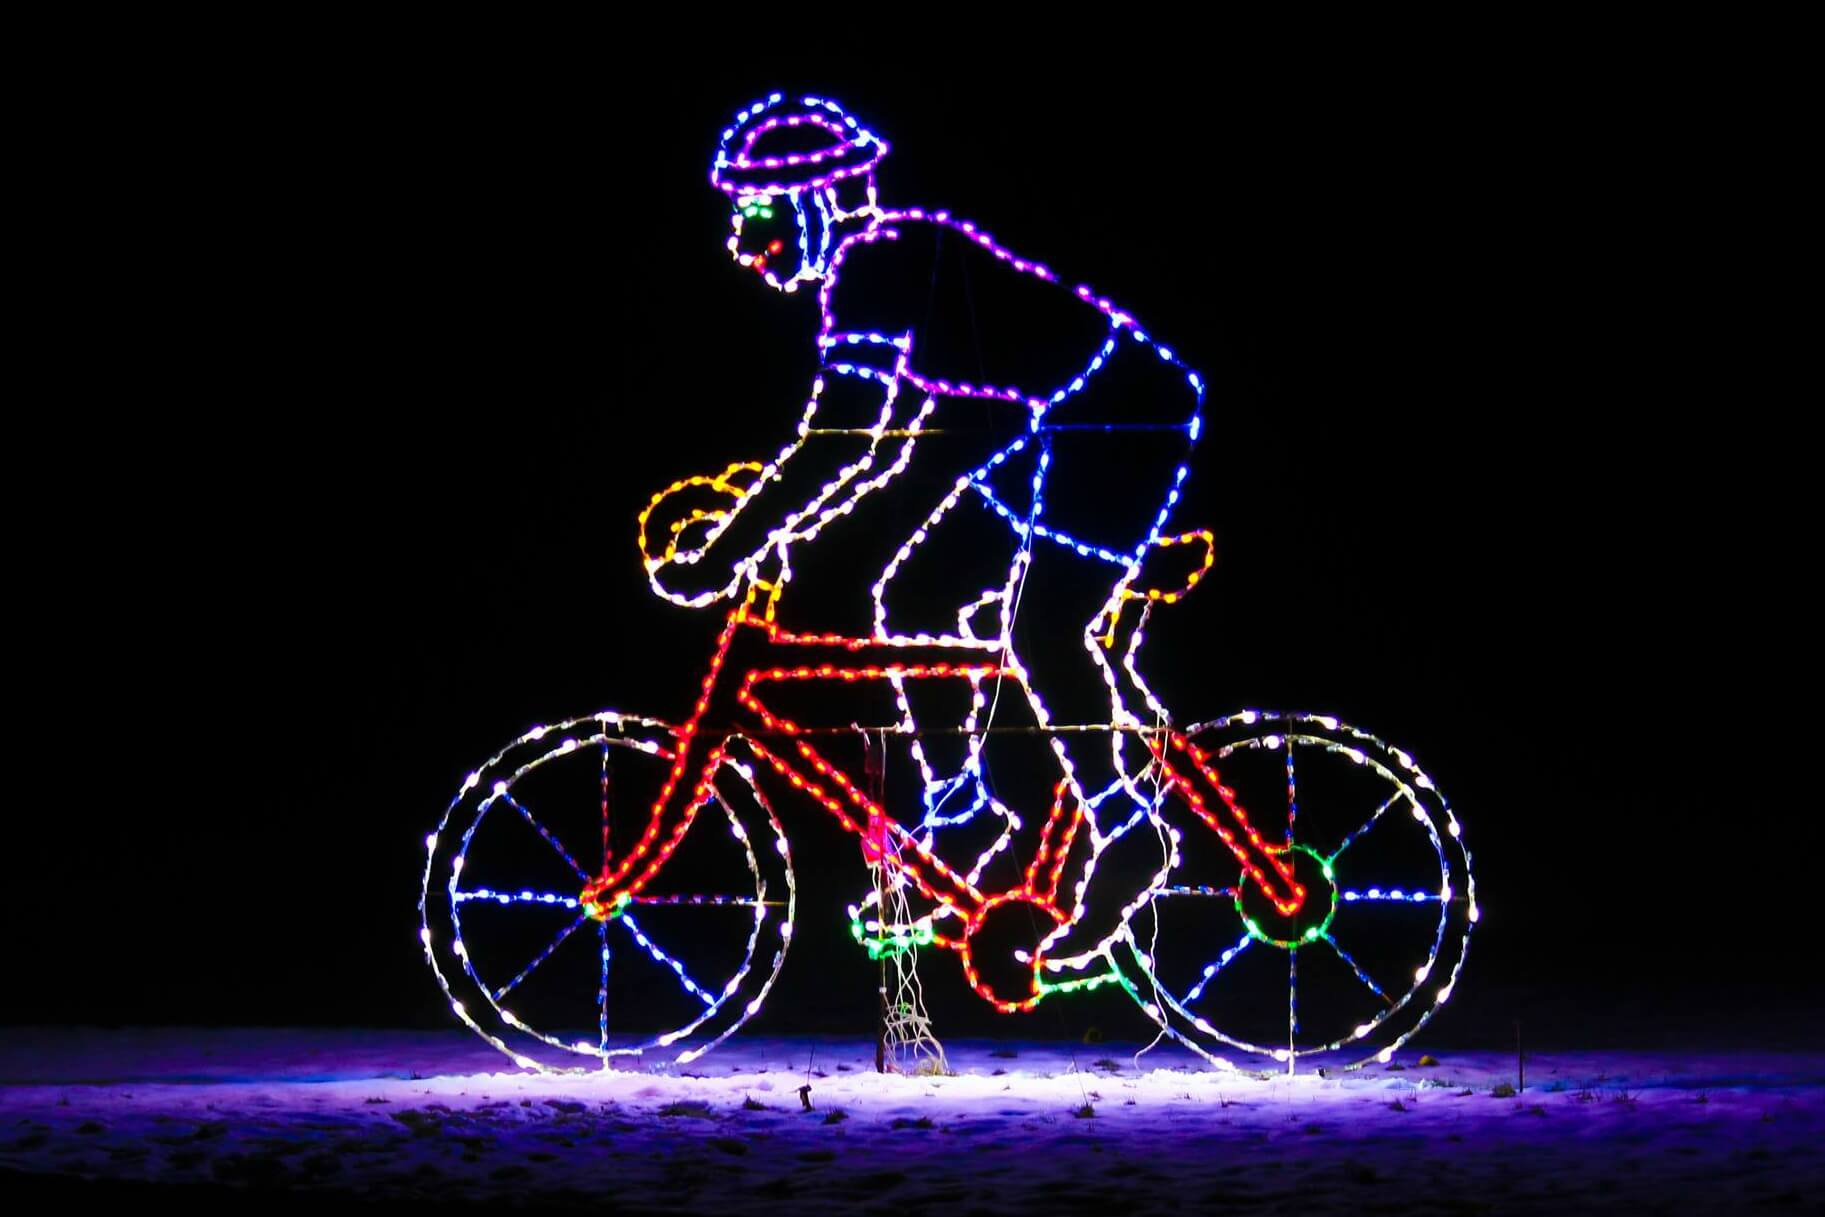 Bike Through The Lights